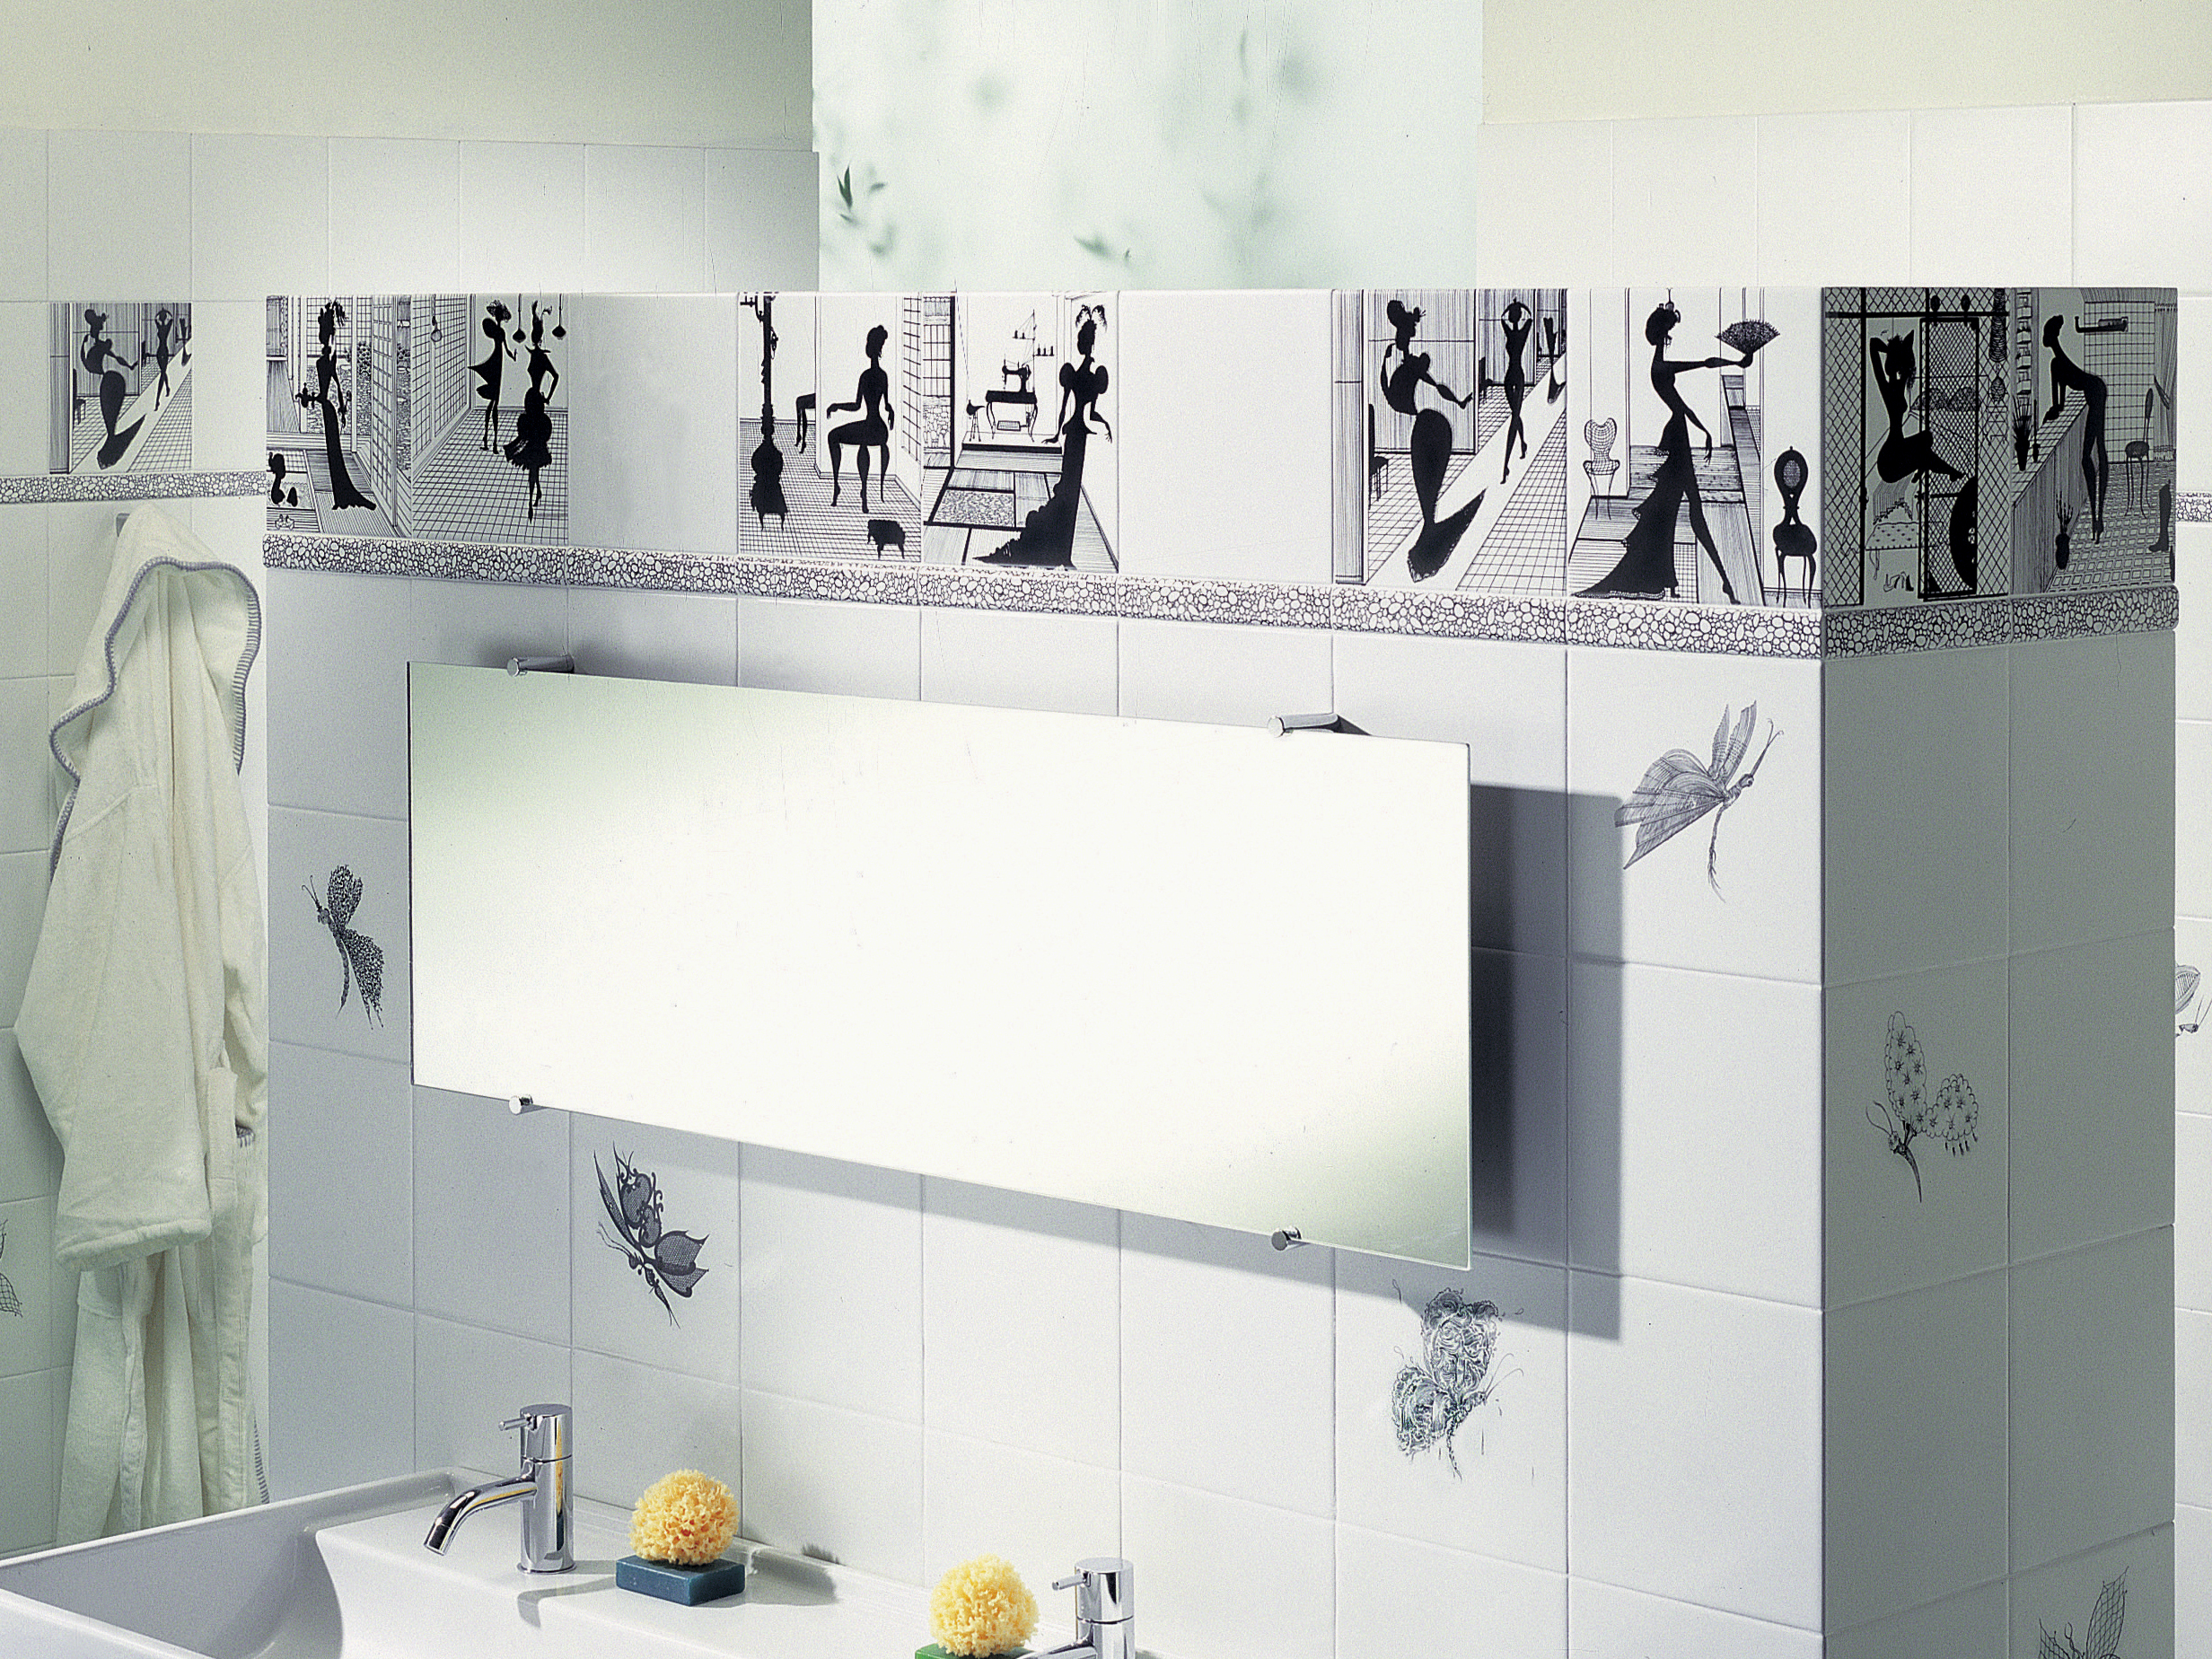 Rivestimento in ceramica madama butterfly by ceramica bardelli - Ceramica bardelli cucina ...